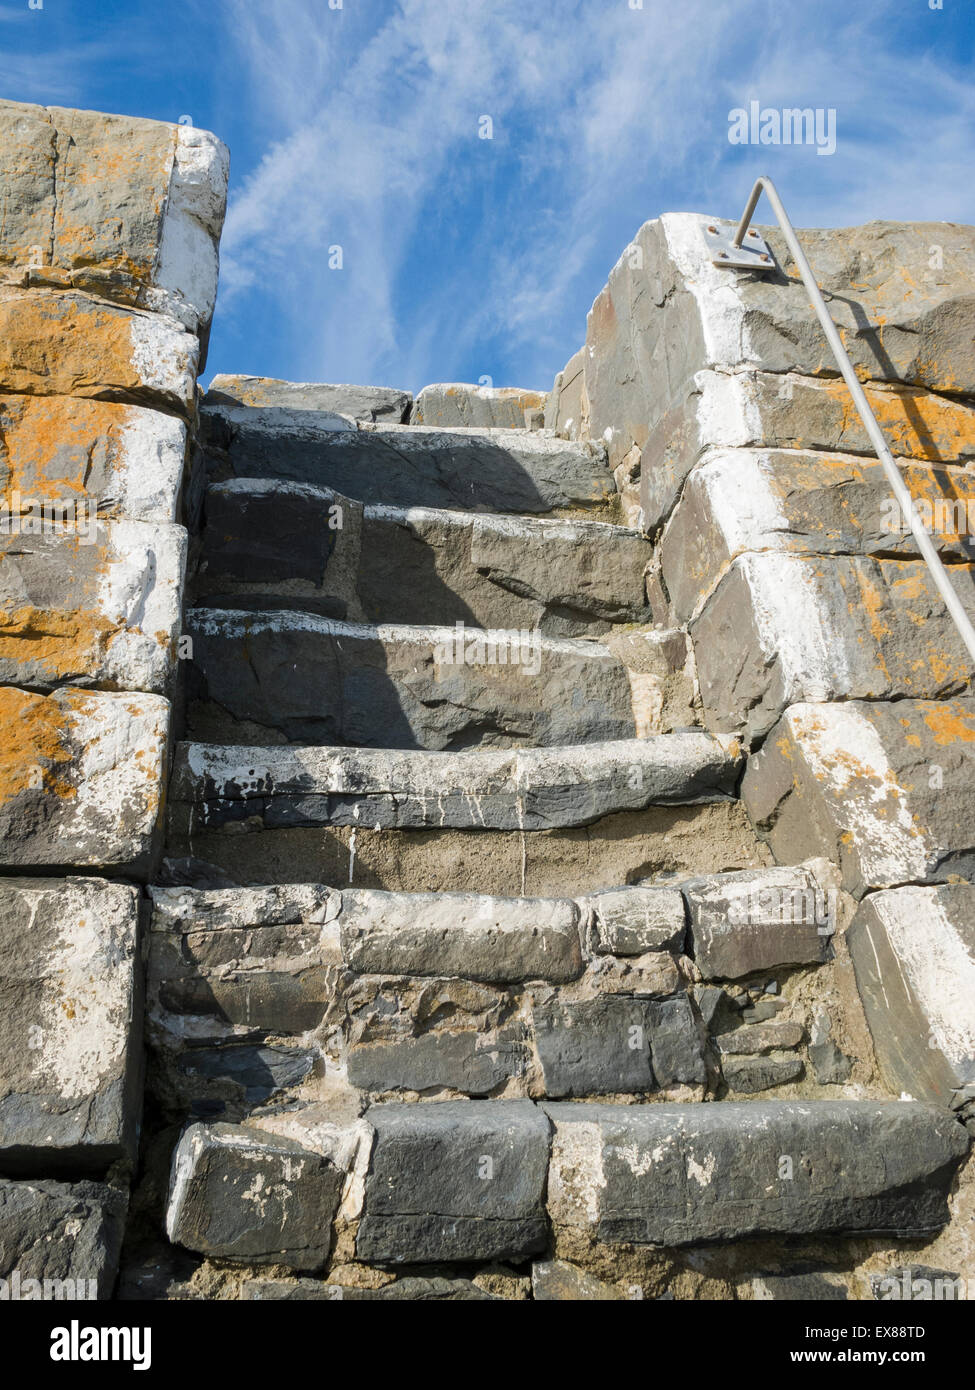 Steps in the quay wall at New Quay, Ceredigion, Wales - Stock Image